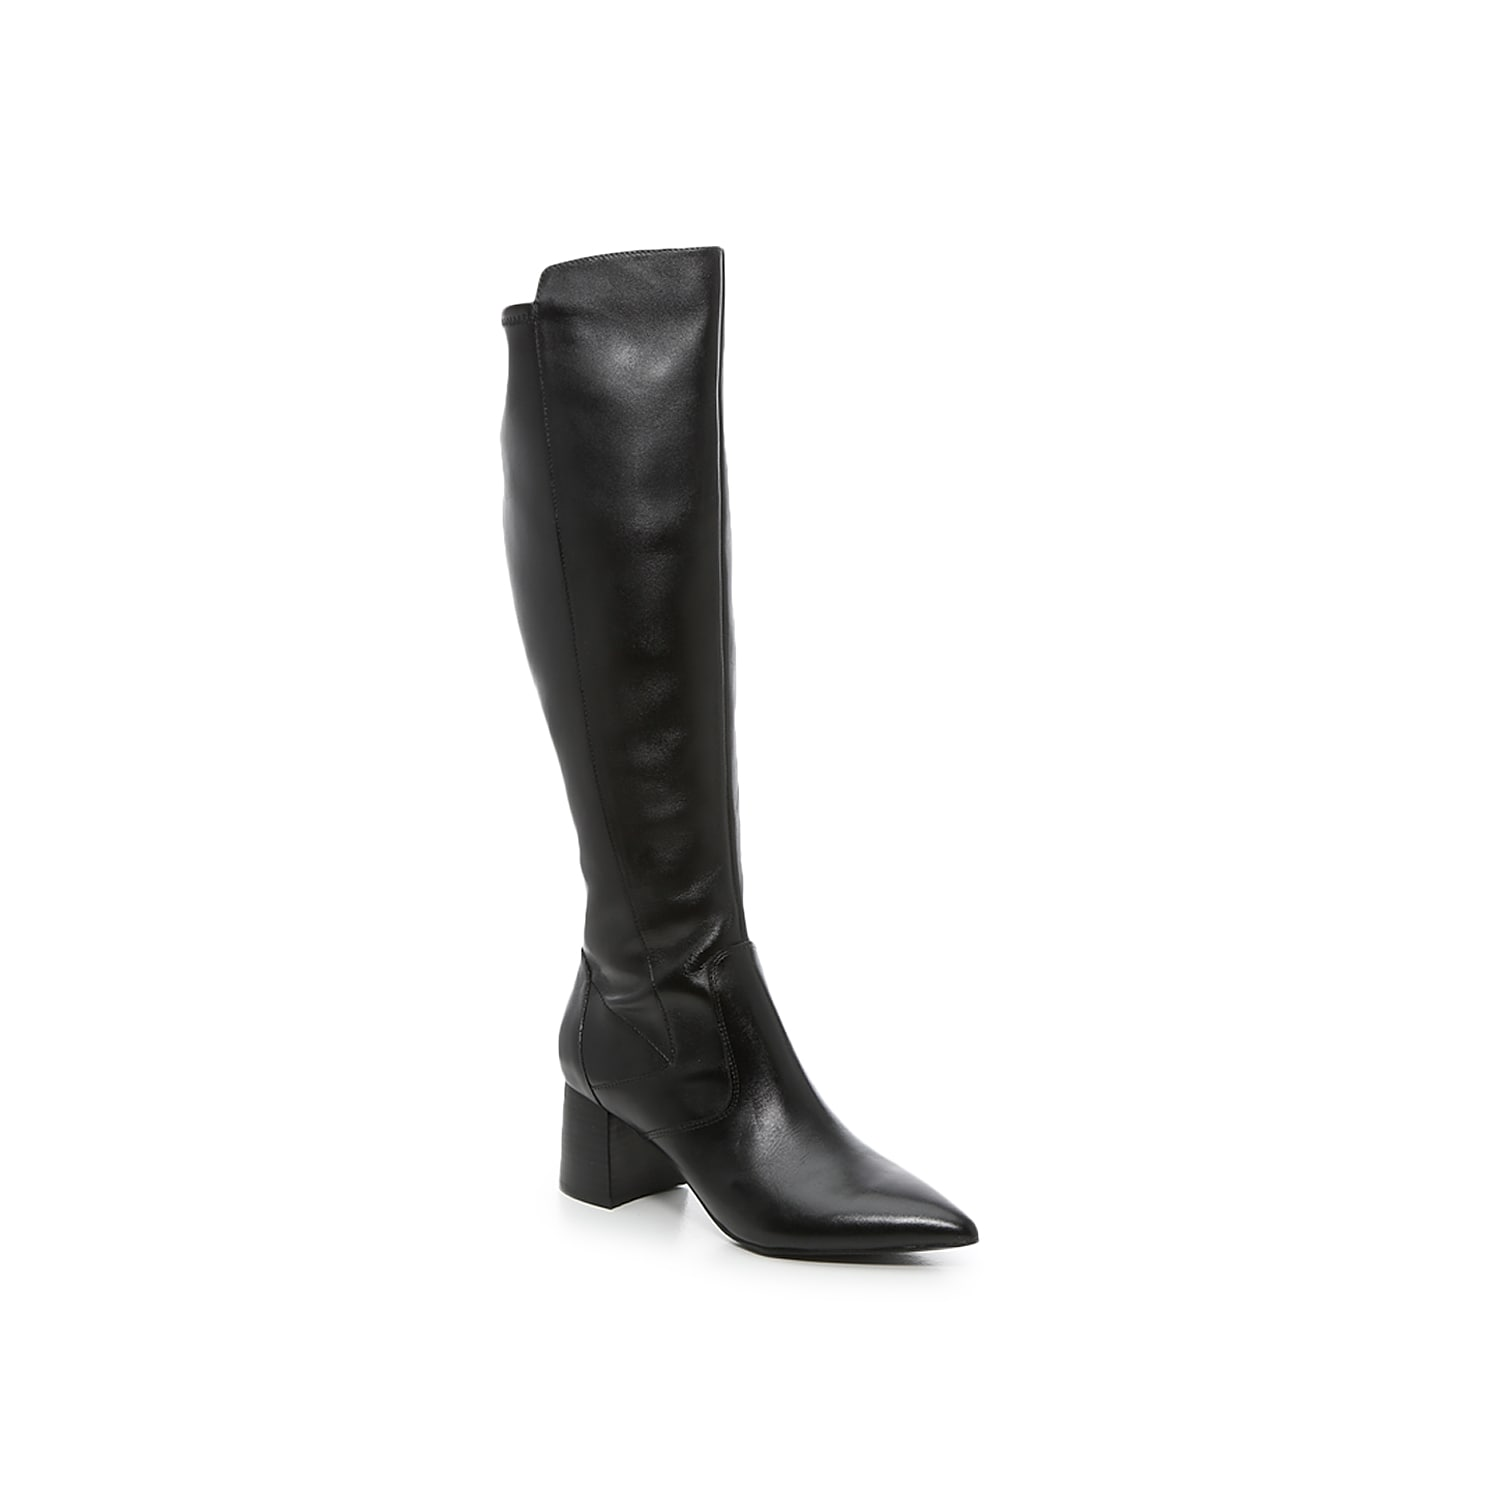 Keep it classic with the Jazmyn boot from Marc Fisher. This knee-high boot is split between a genuine leather front panel and faux leather back panel that\\\'s infused with a stretch topline for just-right comfort. A sharply pointed toe adds drama to the silhouette. Click here for Boot Measuring Guide.